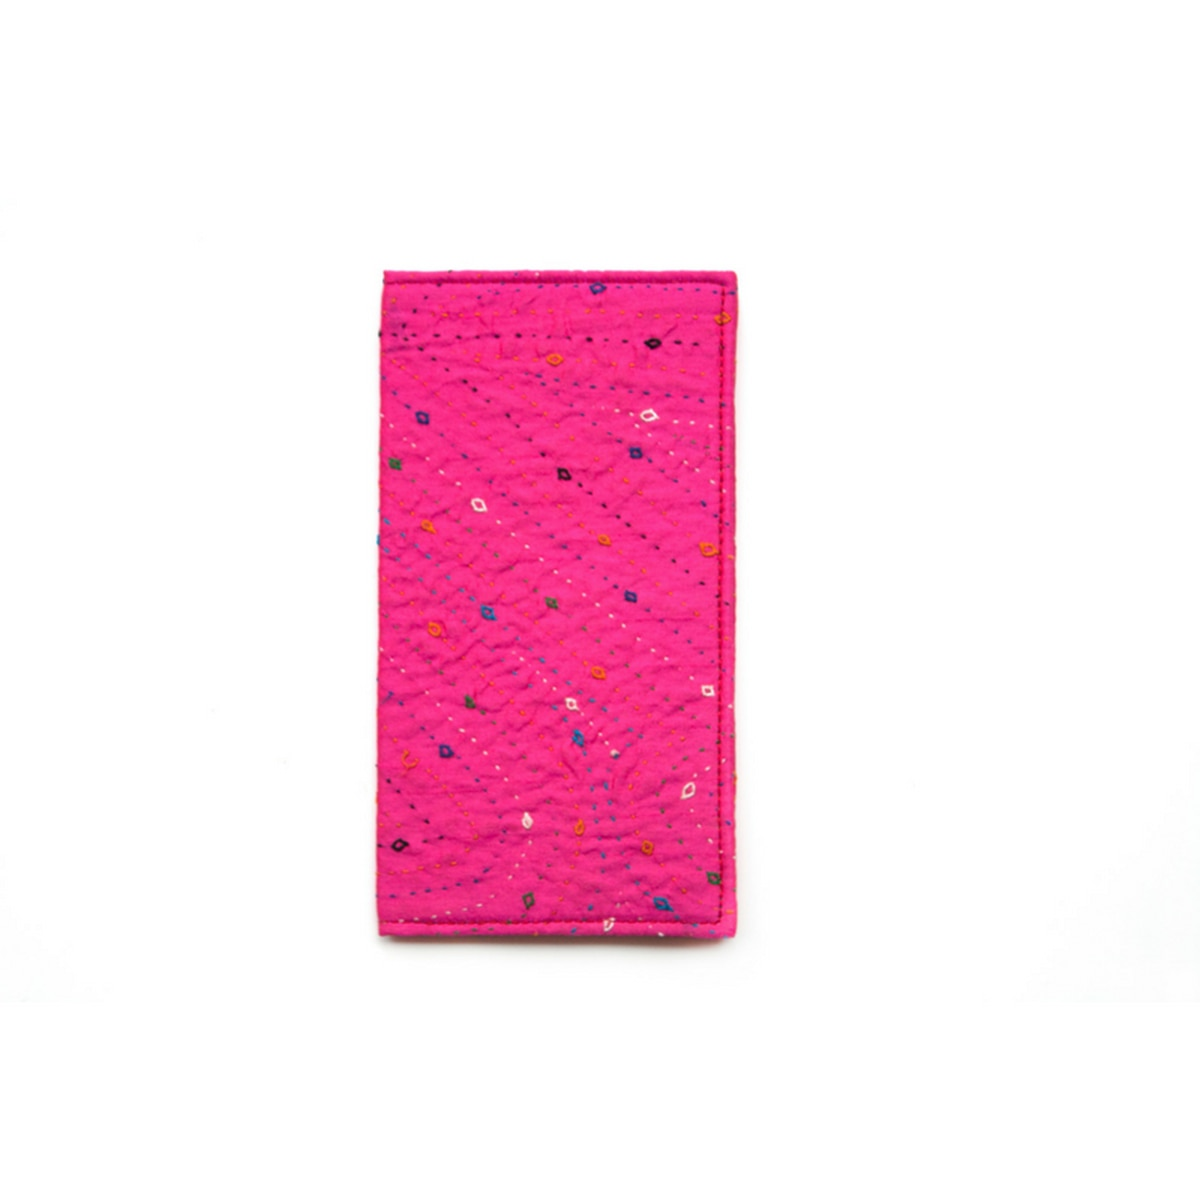 Pink Hand Embroidered Wallet from Siyana London